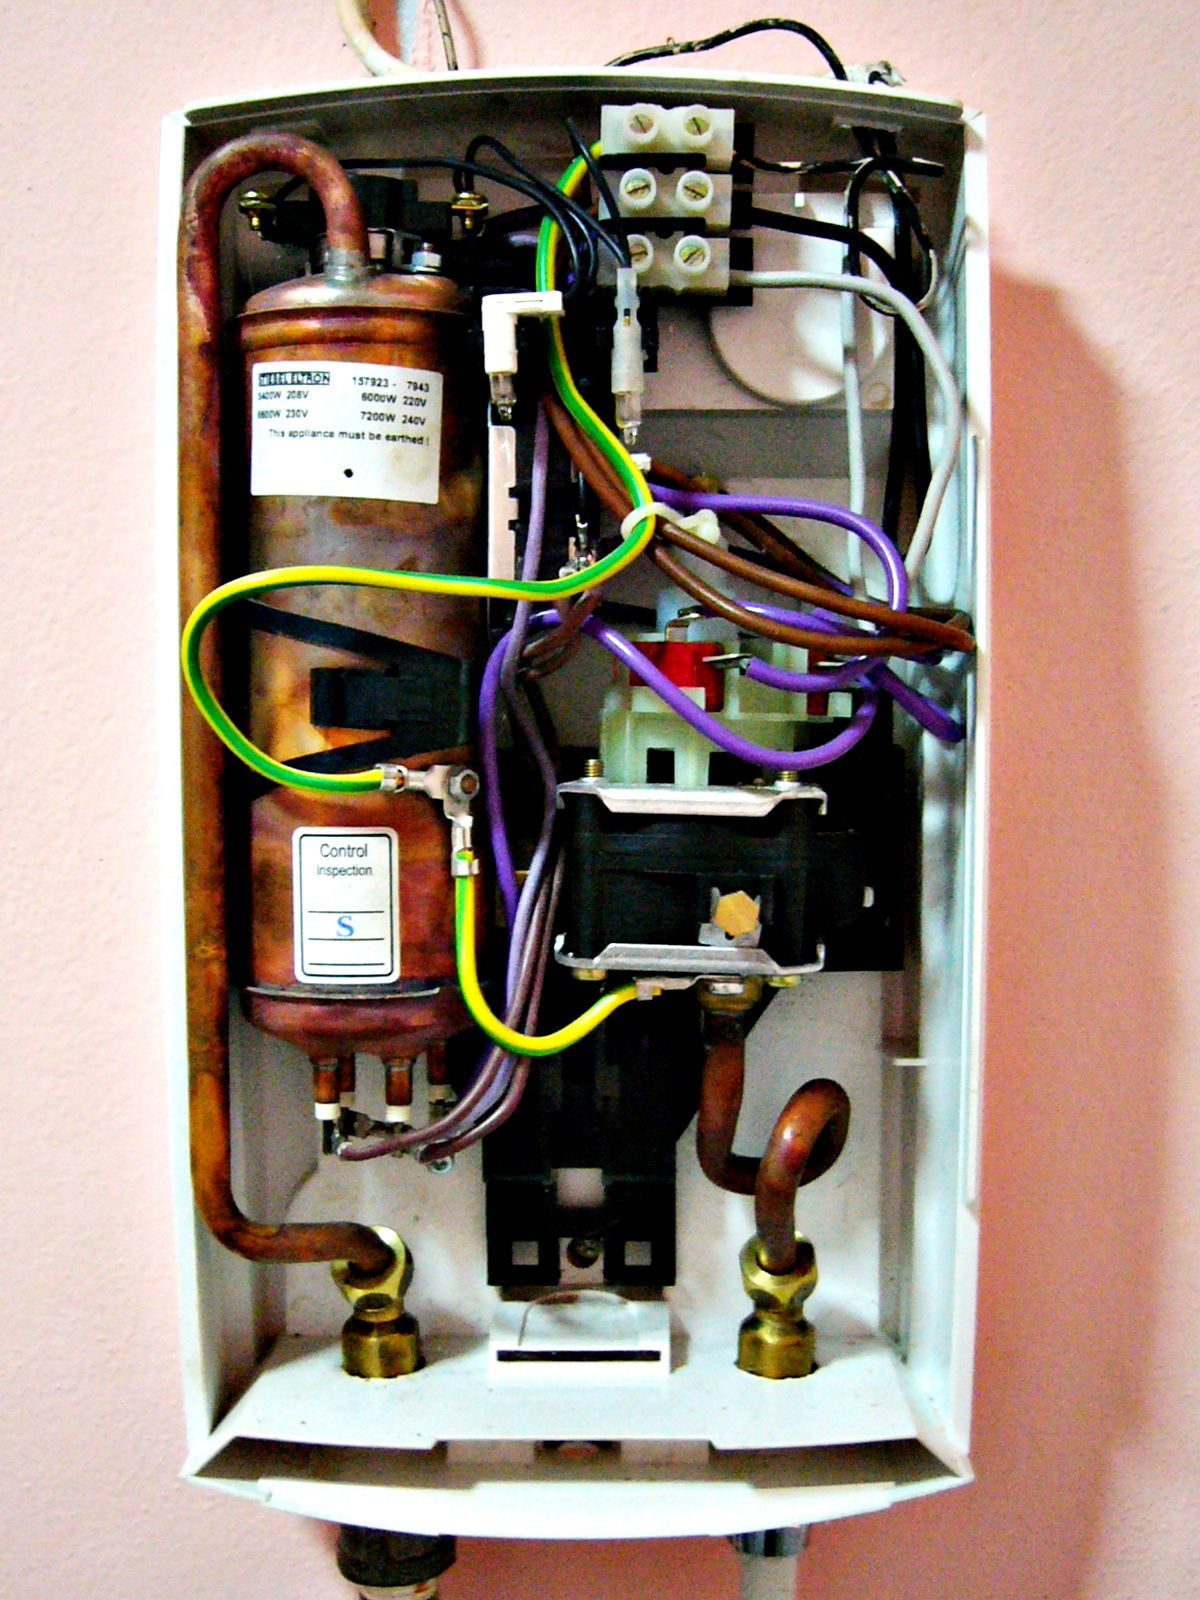 Wiring Diagram For Electric Water Heater Bookingritzcarlton Info Water Heater Maintenance Electric Water Heater Tankless Water Heater